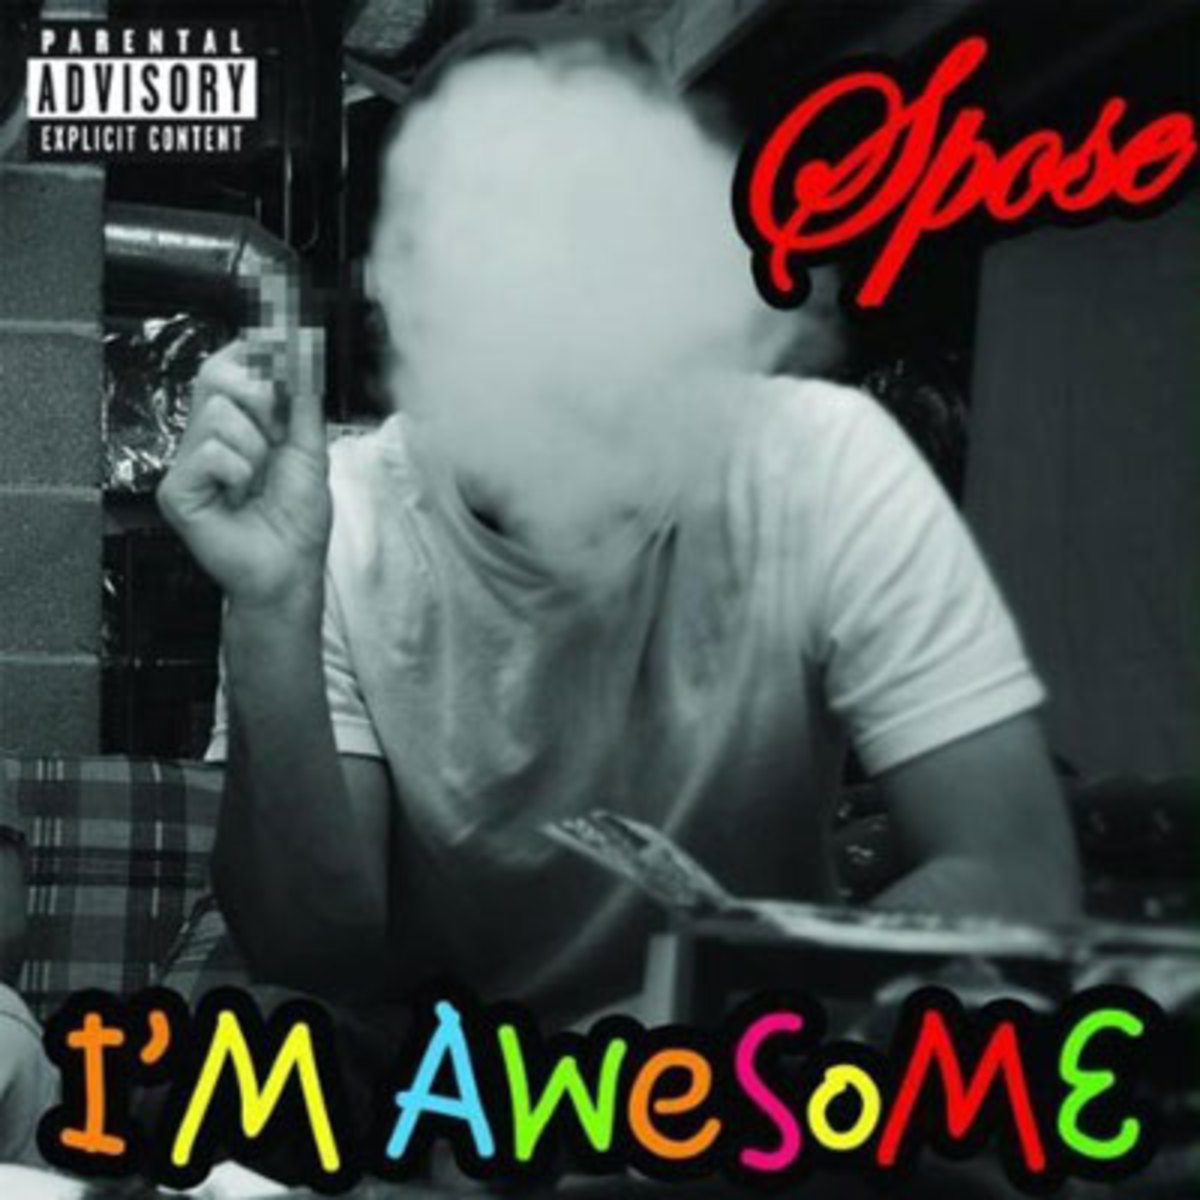 spose-imawesome.jpg